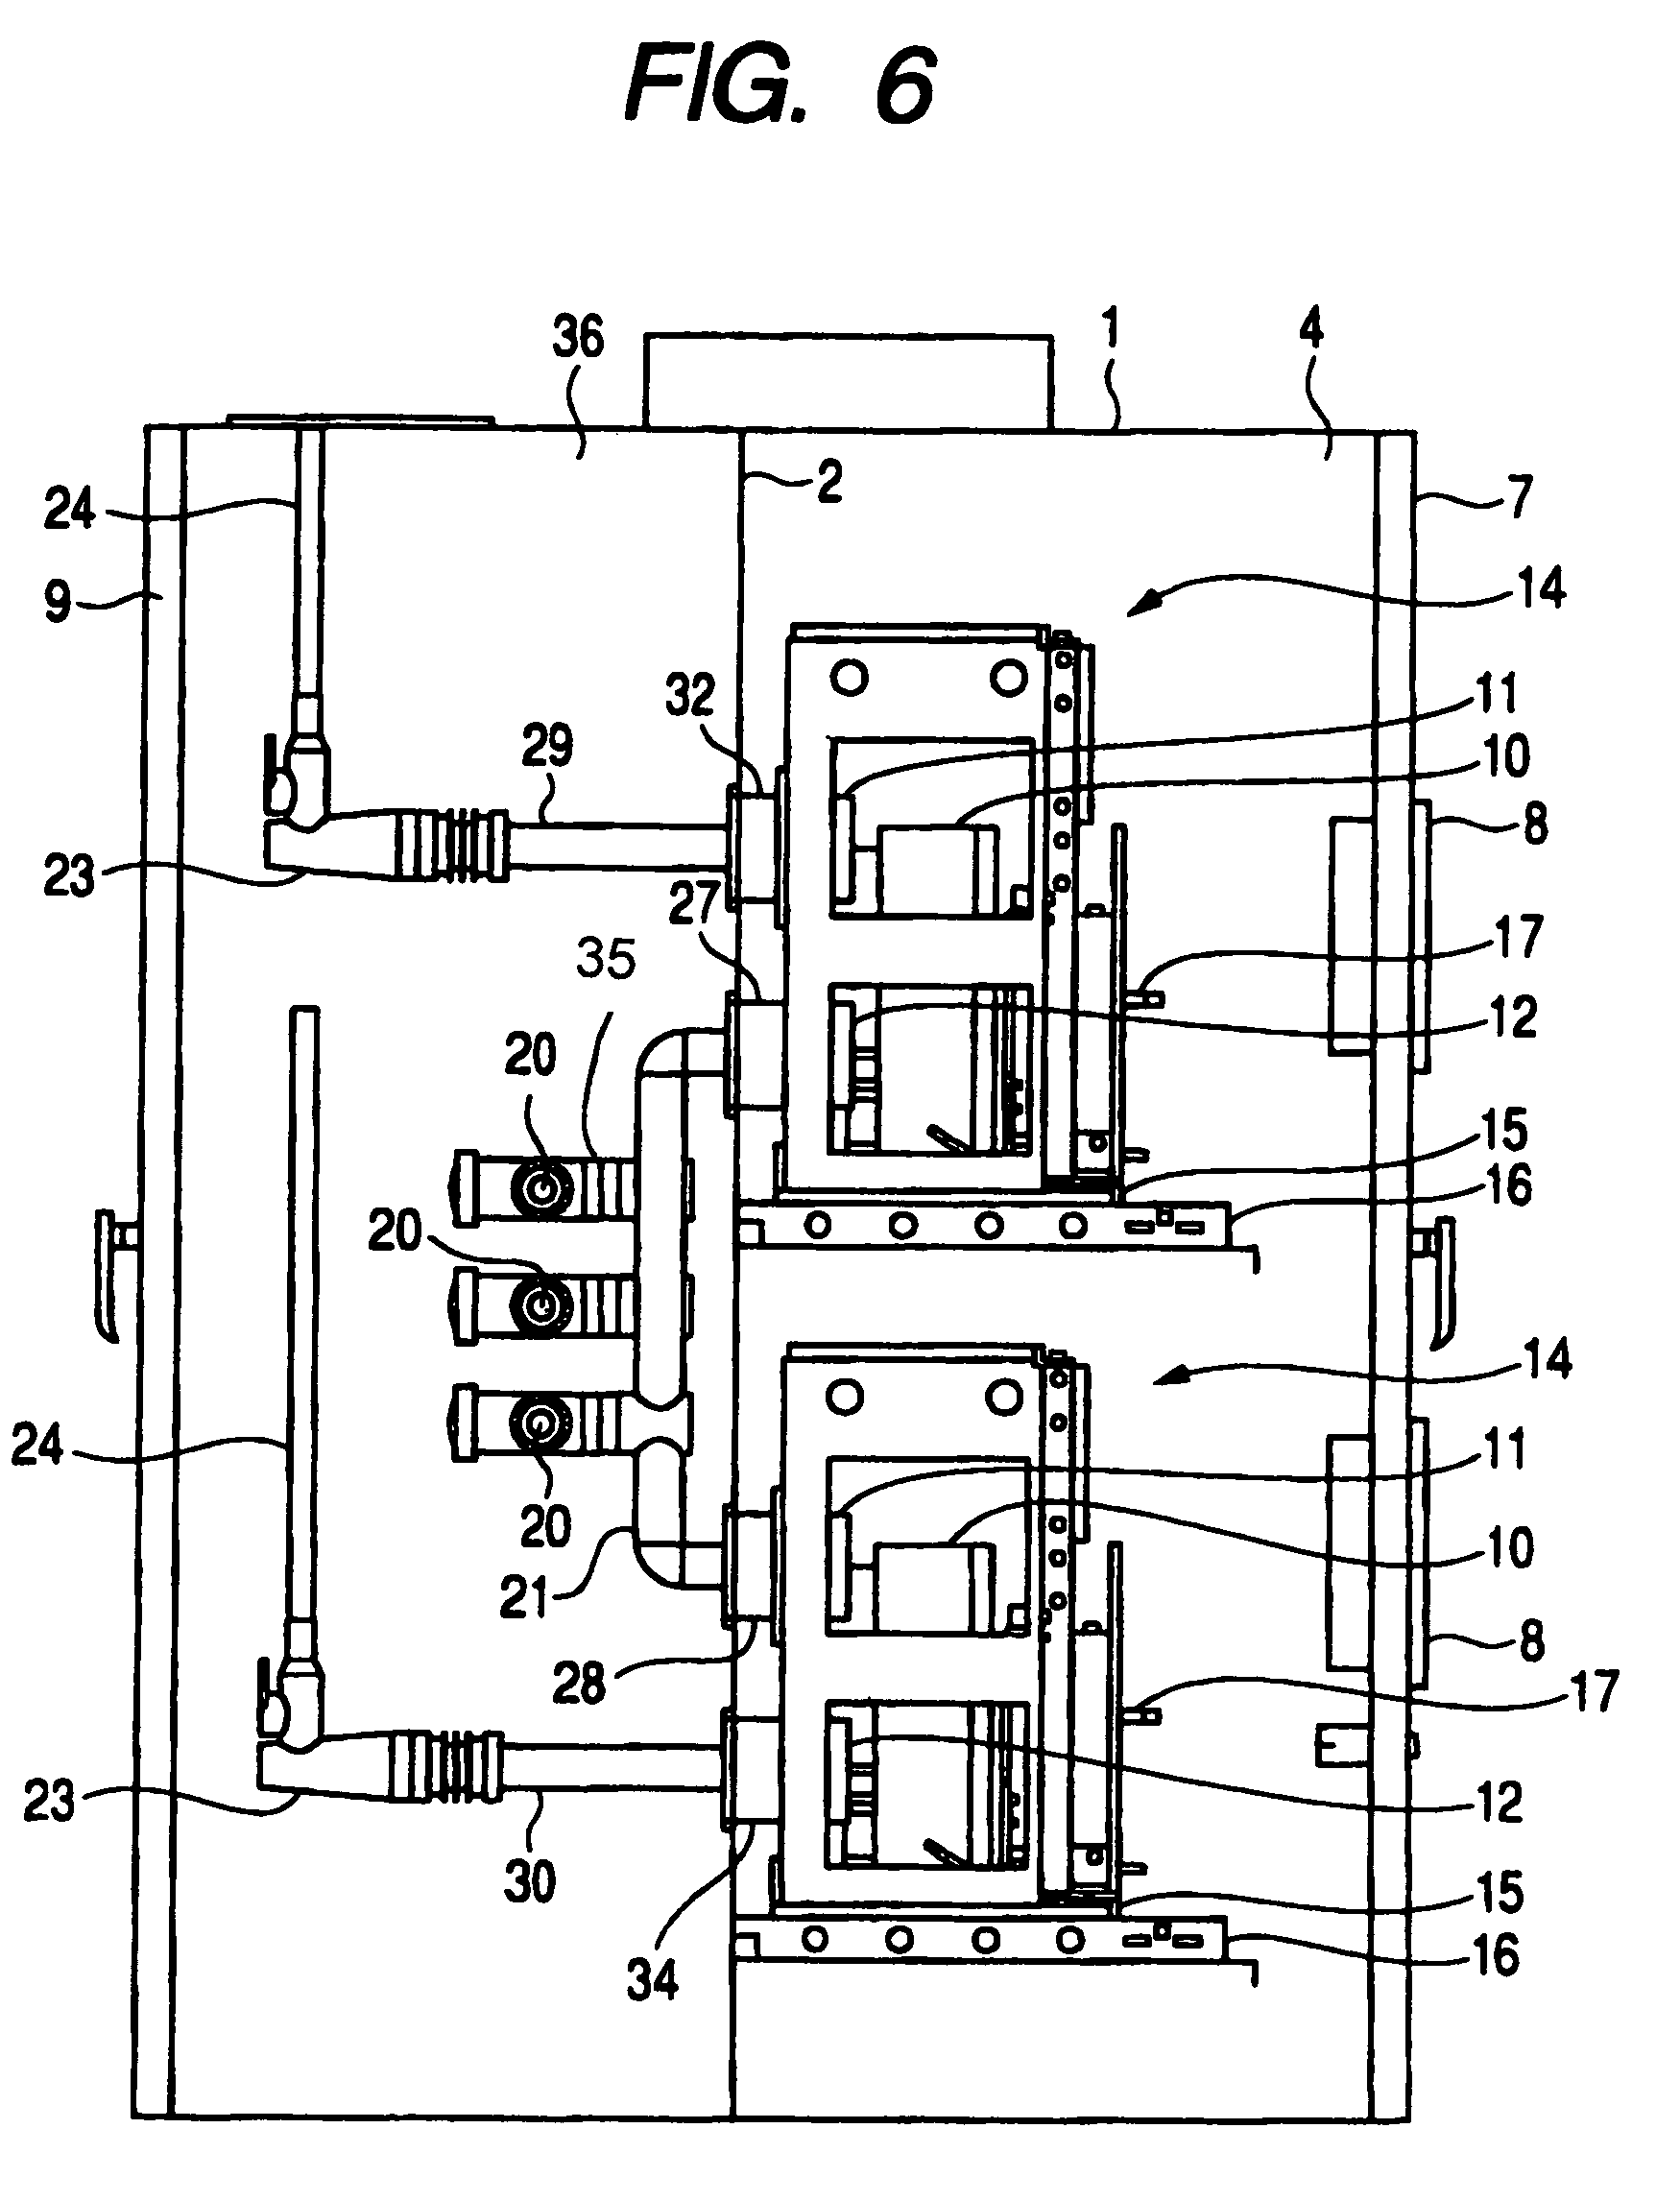 1957 chevy ignition ledningsdiagram